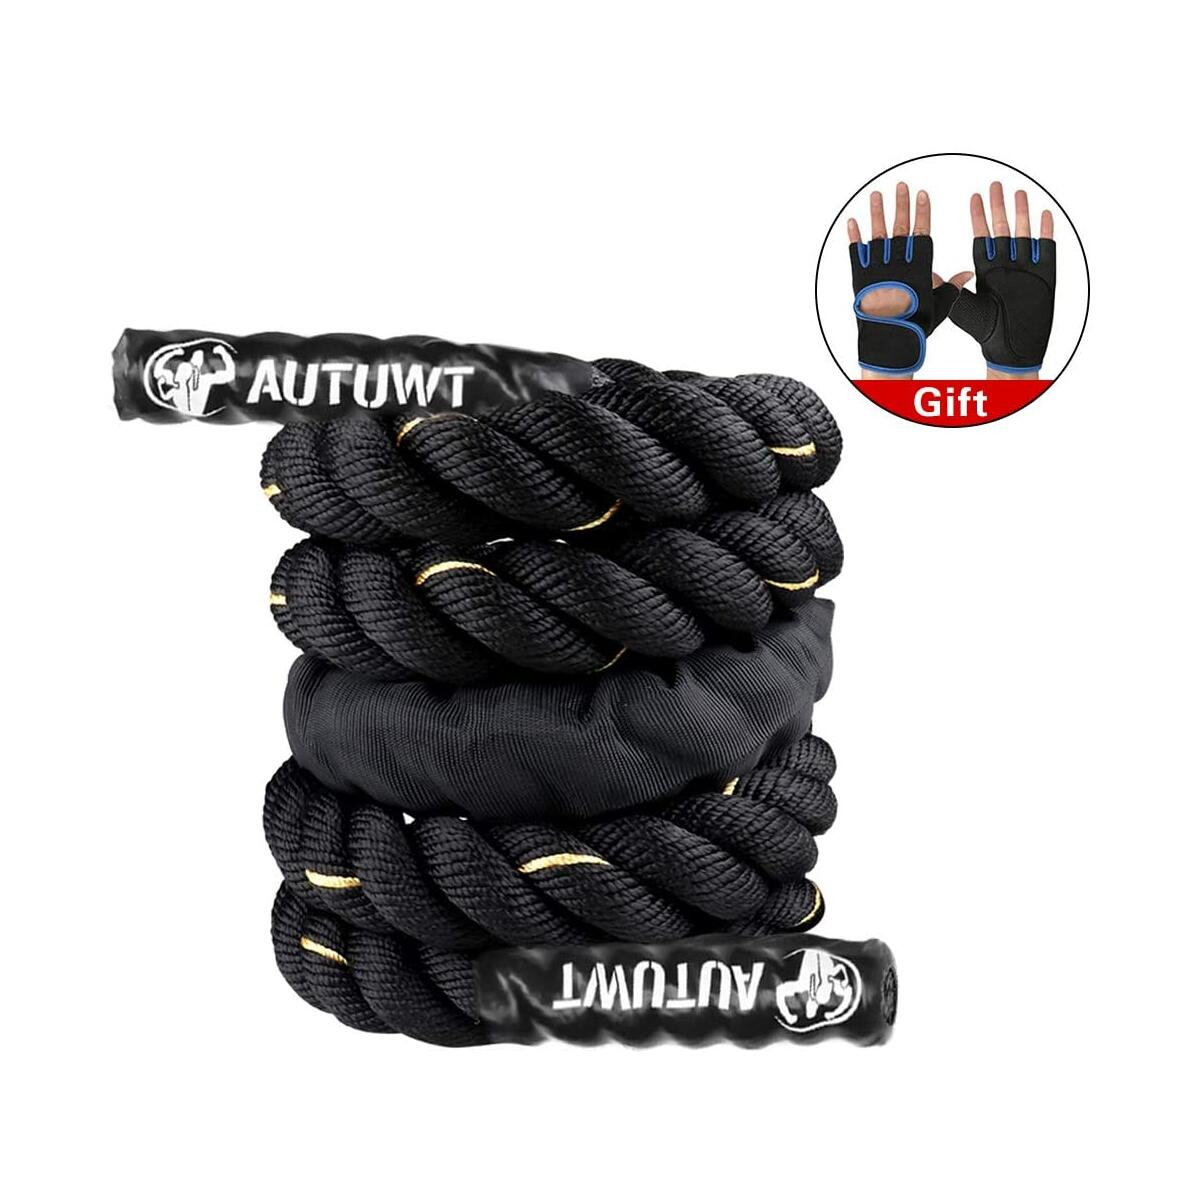 "AUTUWT Heavy Jump Rope Skipping Rope Workout Battle Ropes with Gloves for Men Women Total Body Workouts Power Training Improve Strength Building Muscle 1""*9.2ftft"